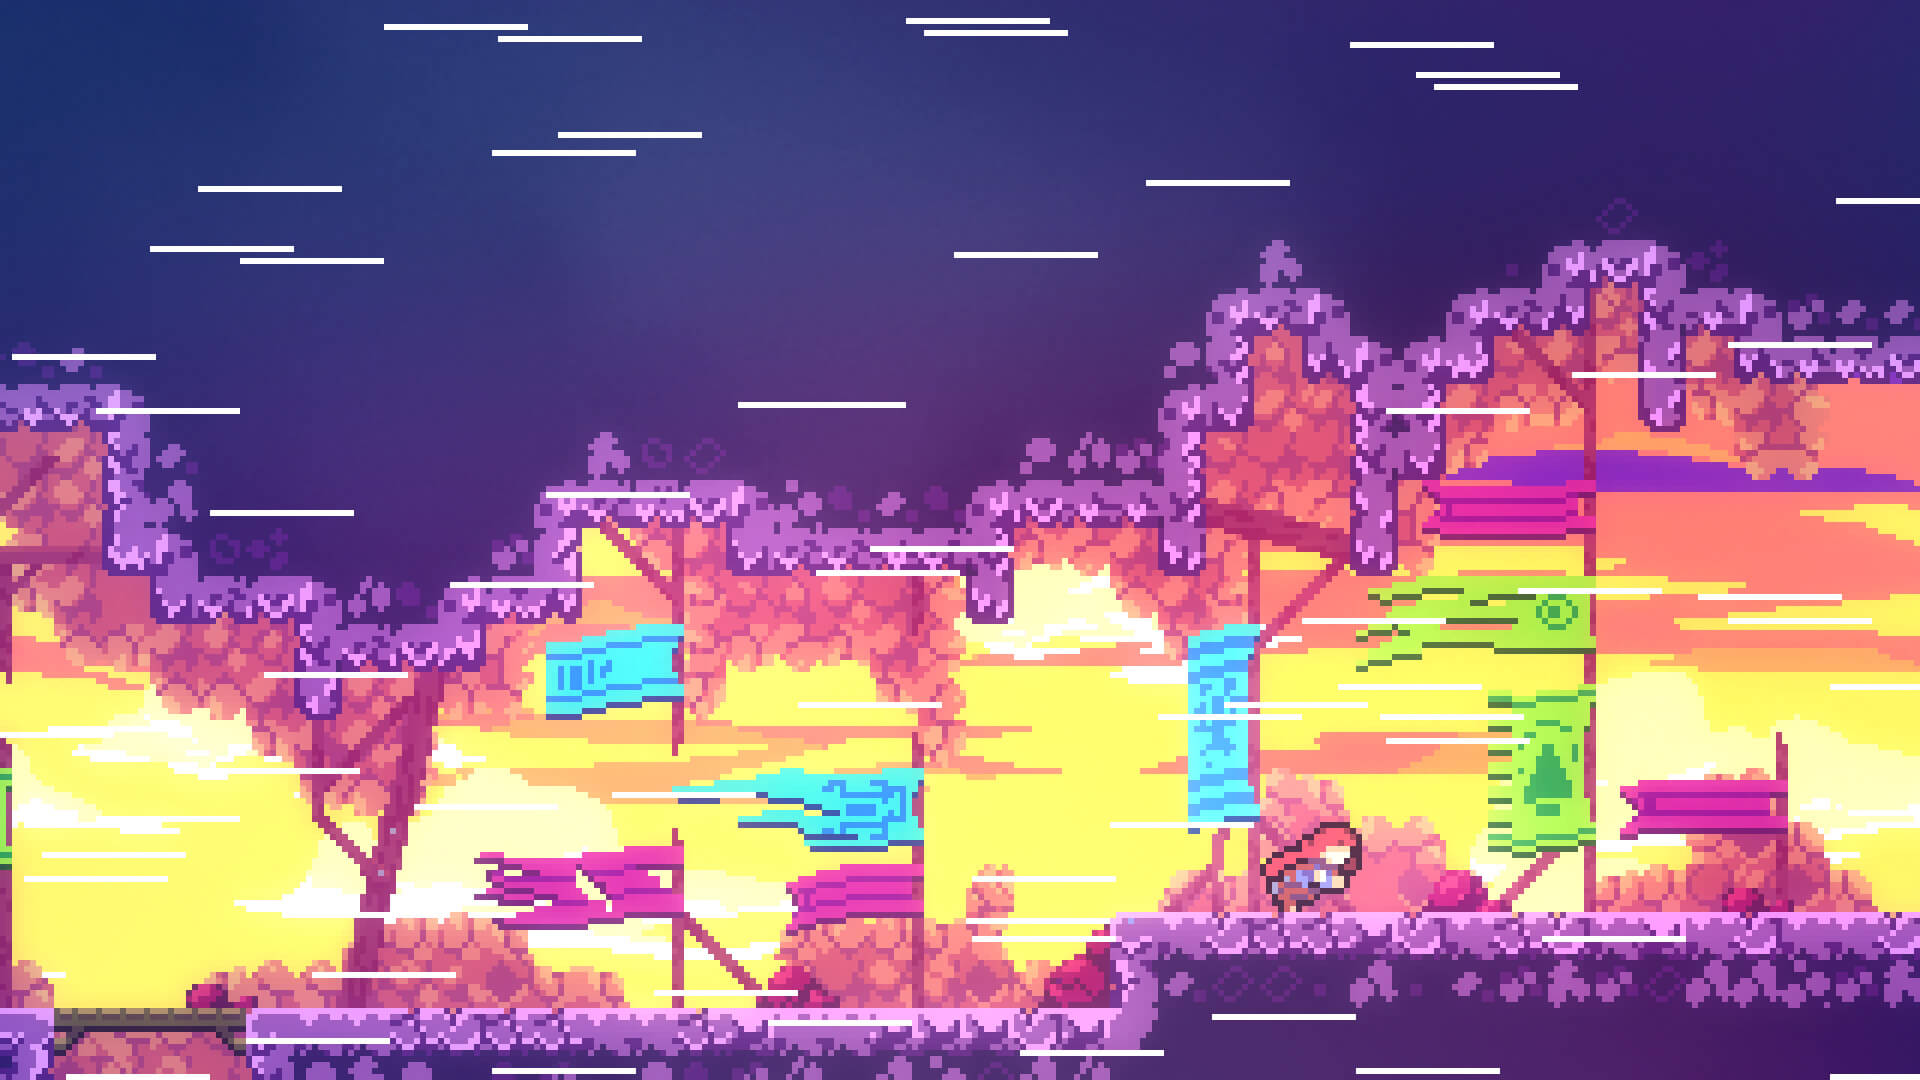 A still from Celeste, a game in which the protagonist fights her inner demons to move forward| Gamescapes | STIRworld